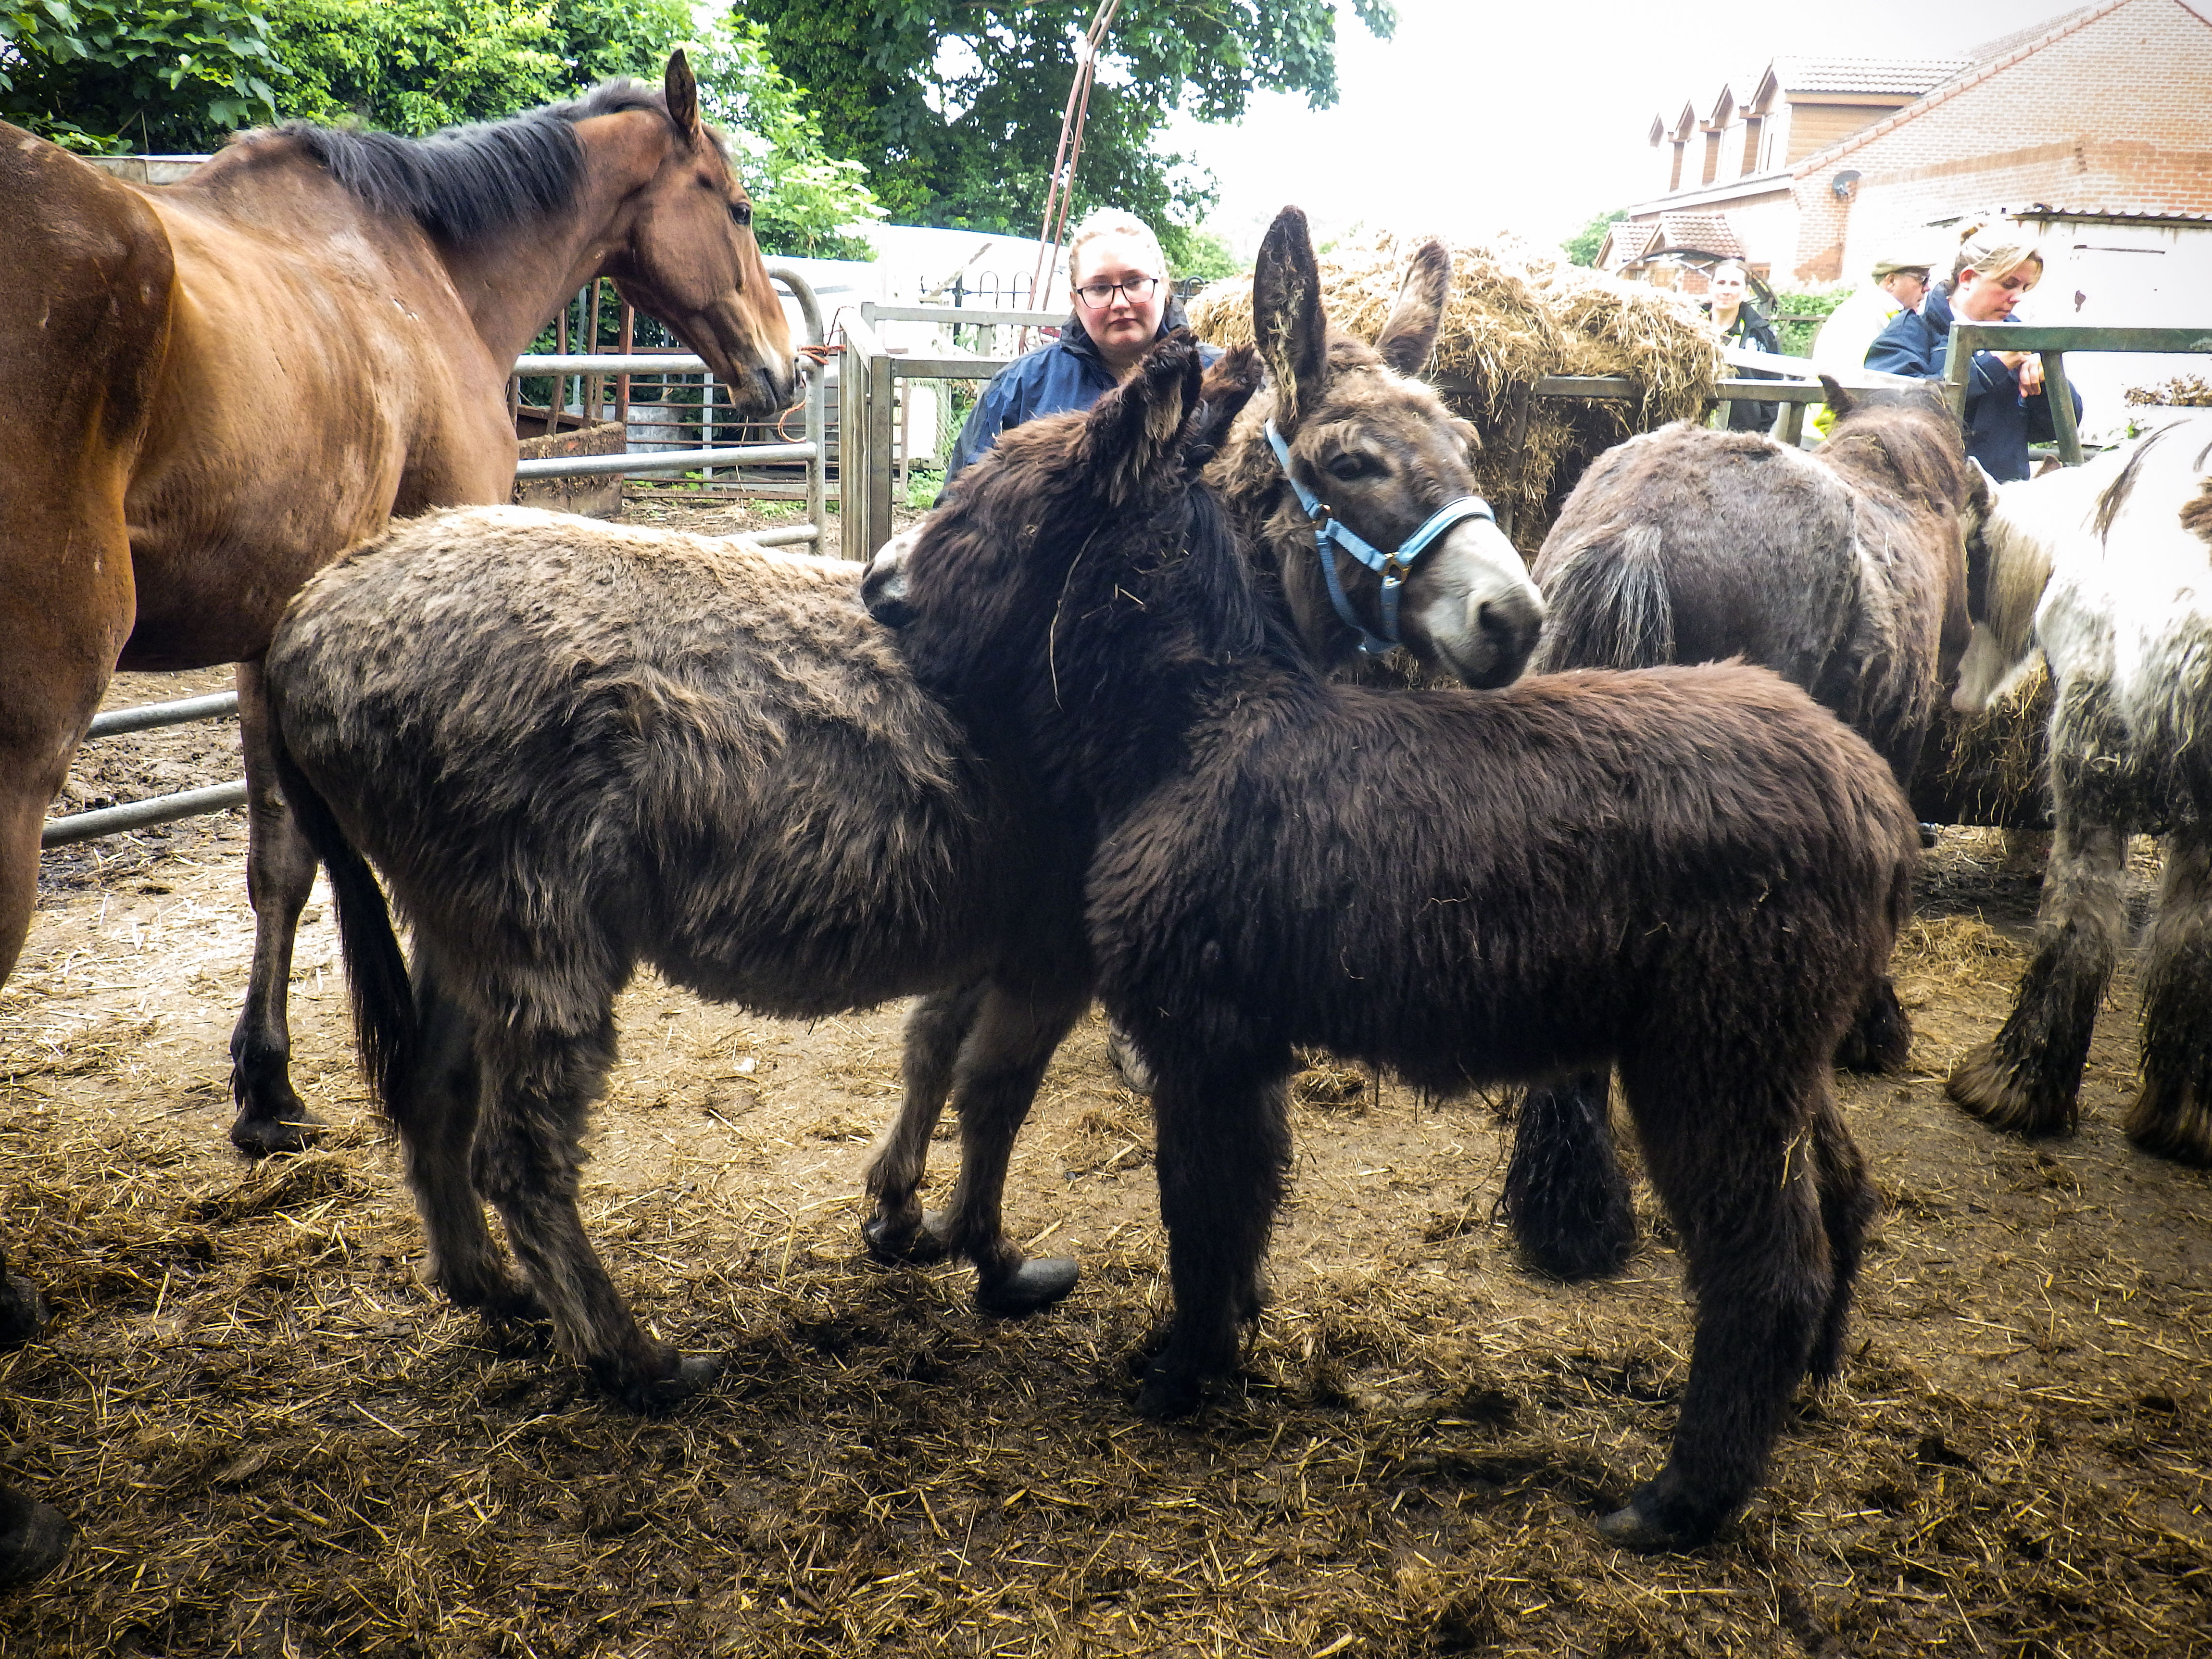 Donkeys grooming each other in muddy yard during RSPCA rescue